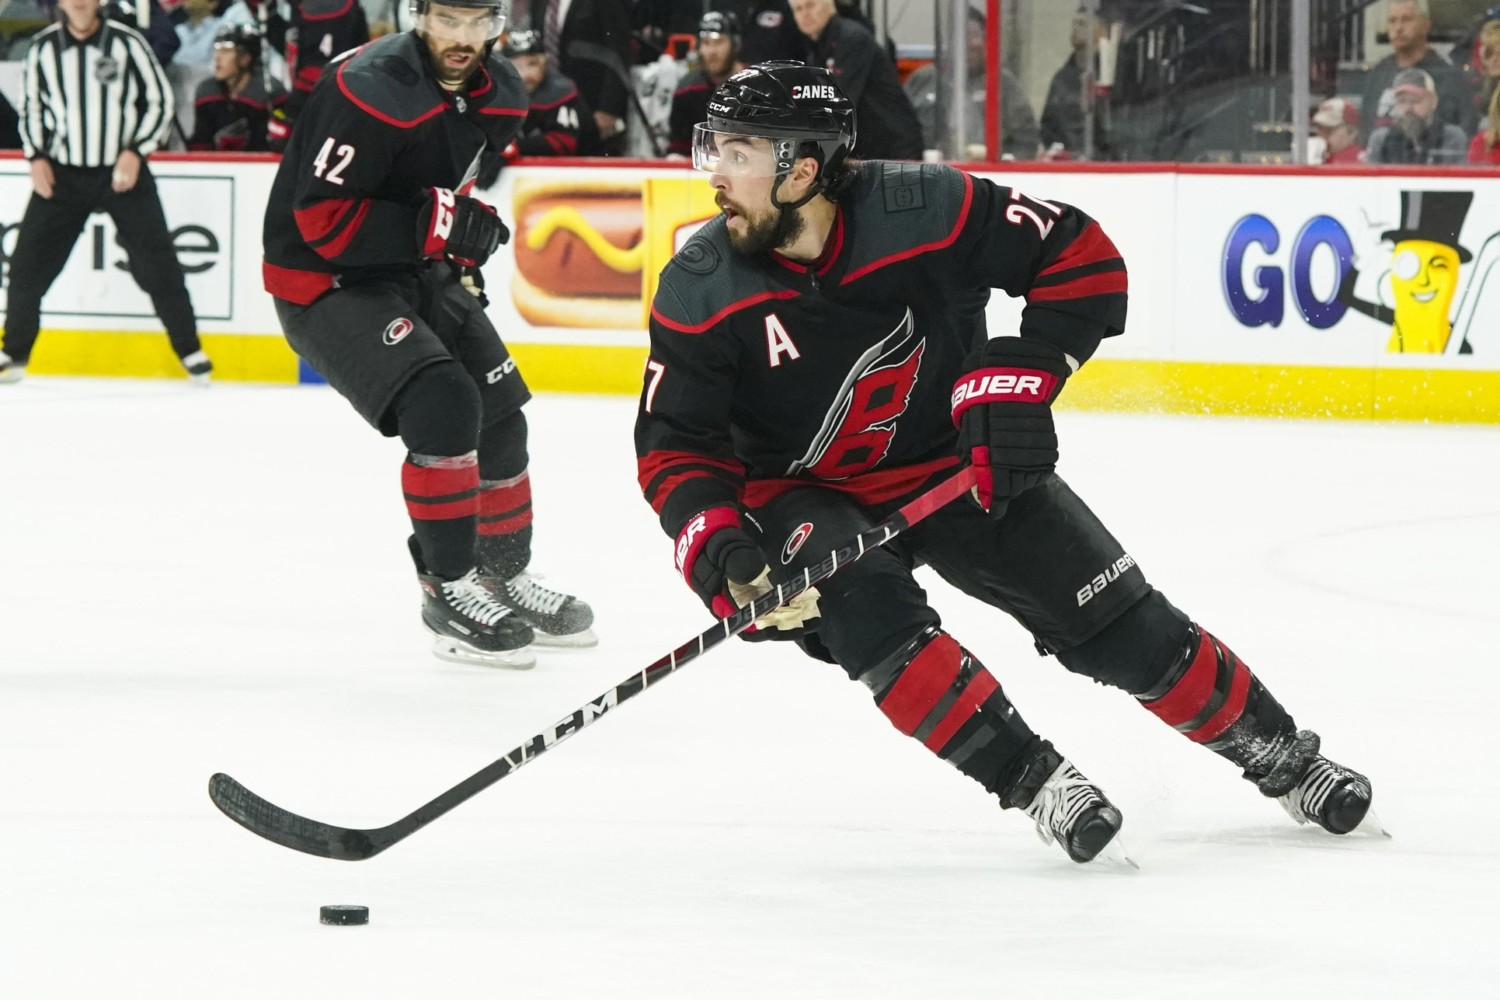 Carolina Hurricanes defenseman Justin Faulk